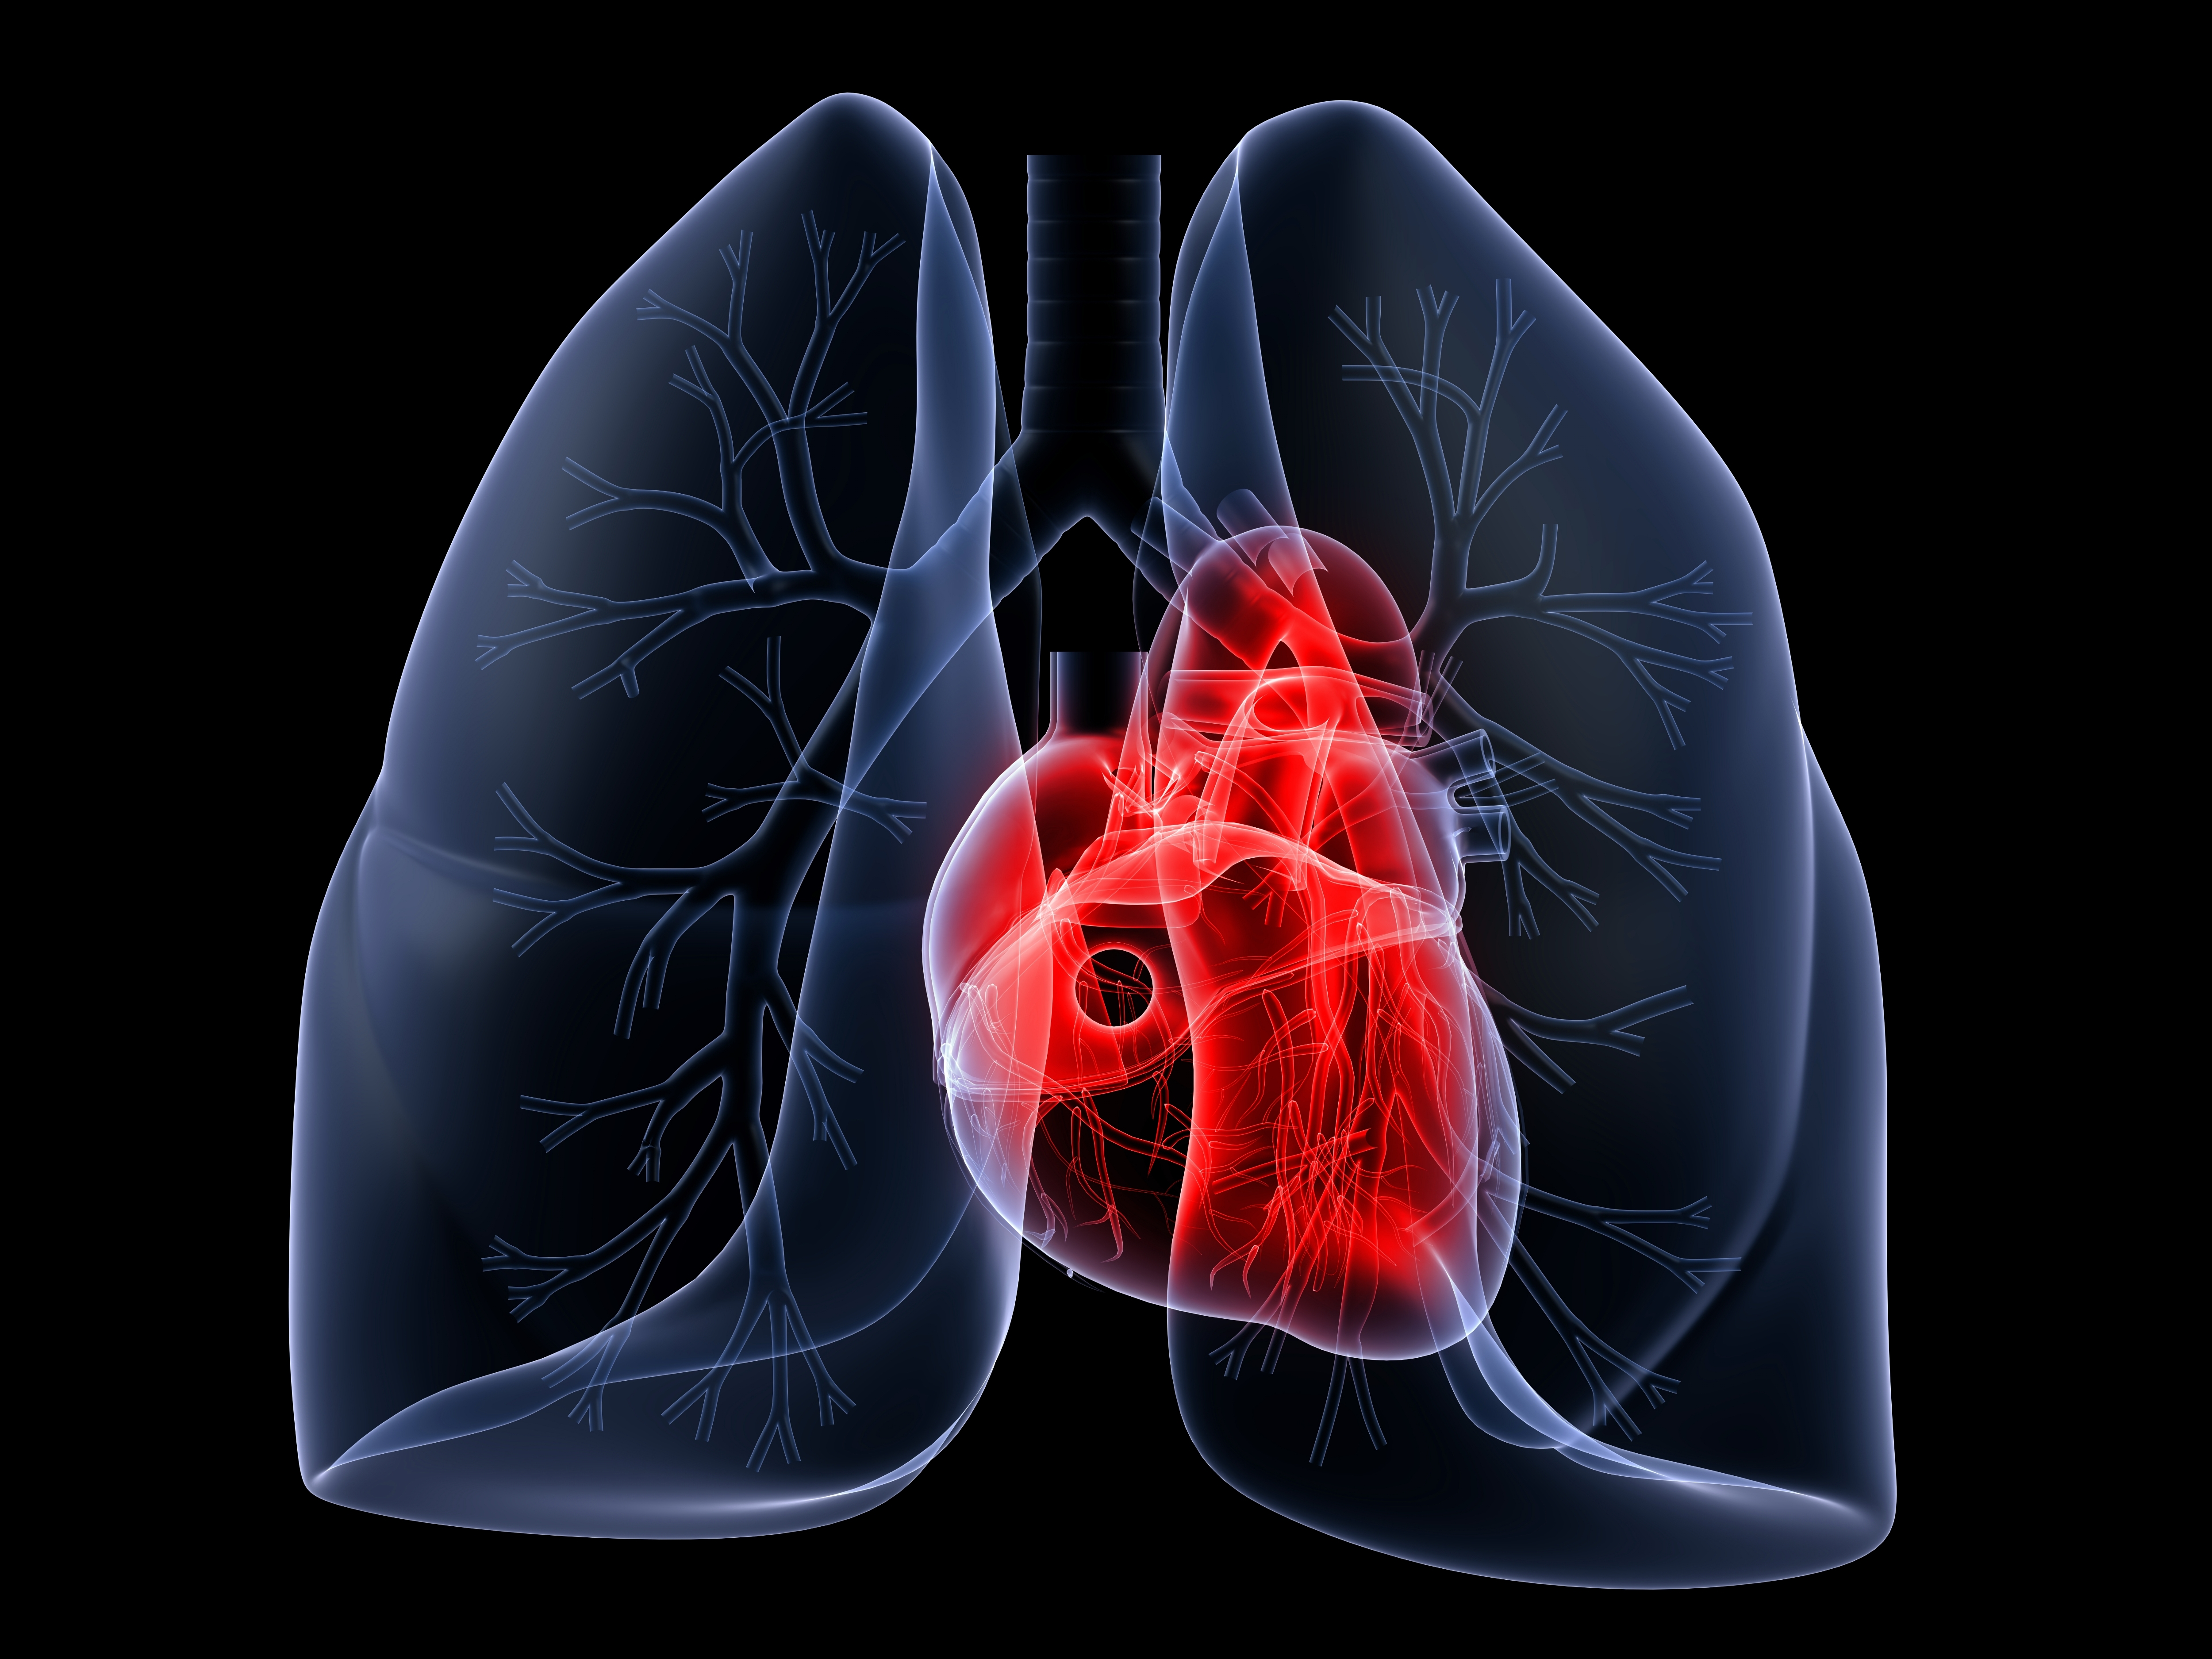 Quadriceps Endurance is Reduced in Individuals with COPD